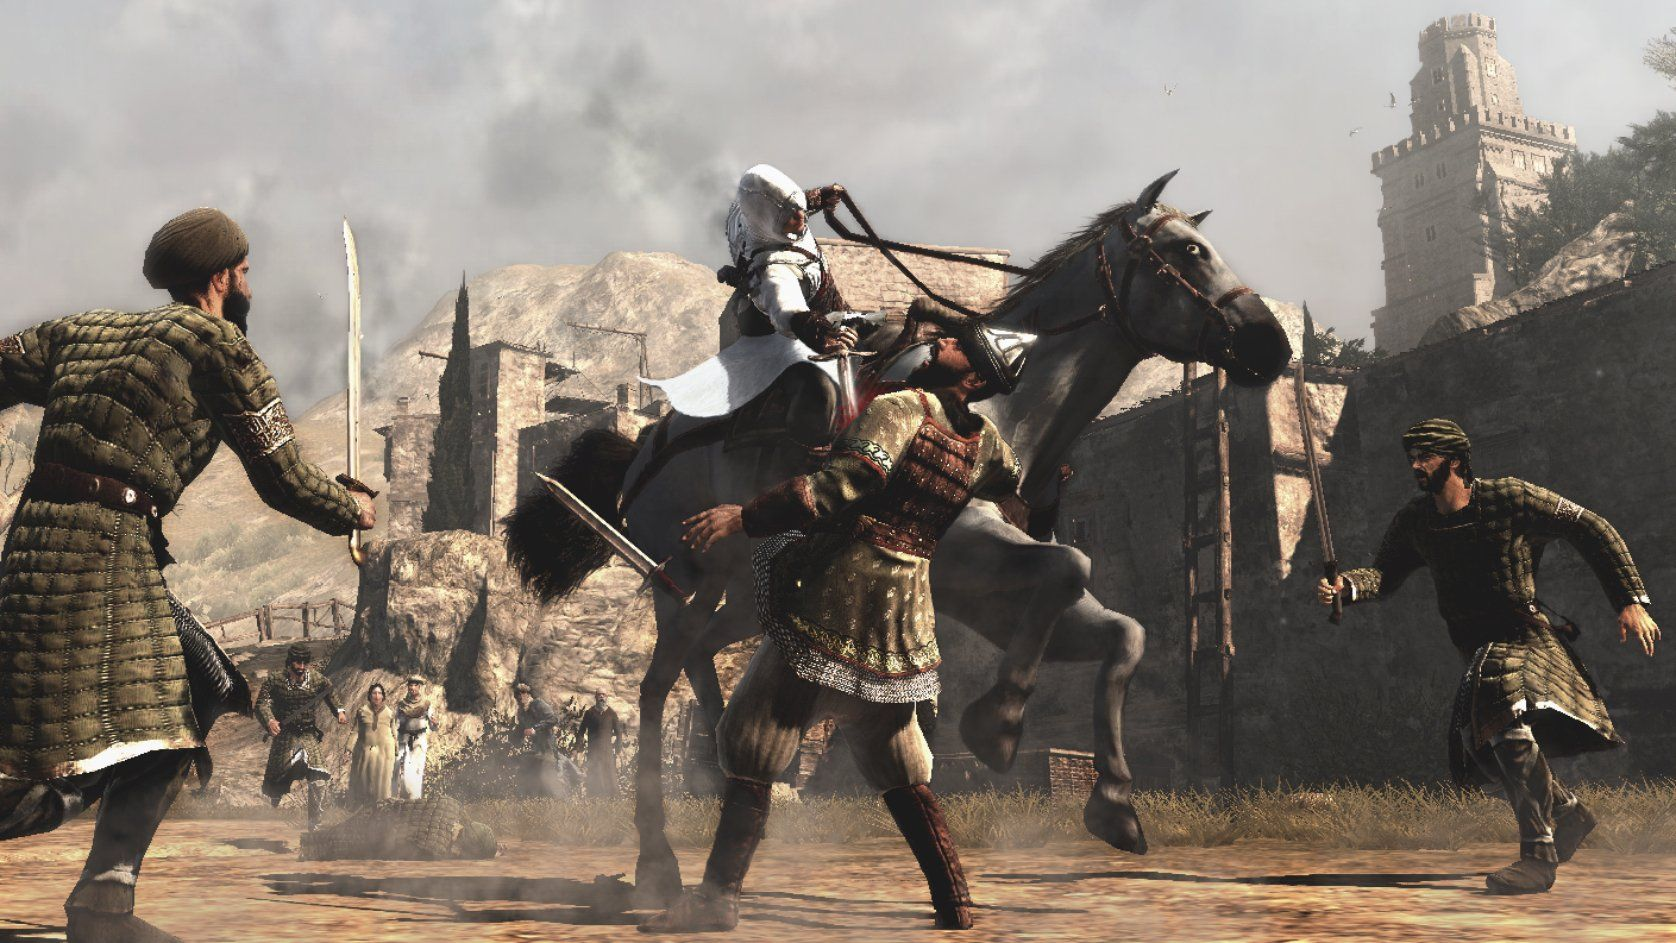 Popular Wallpaper Horse Assassin'S Creed - d1e57338a79be984a8edc9722a793caf  Picture_959661.jpg